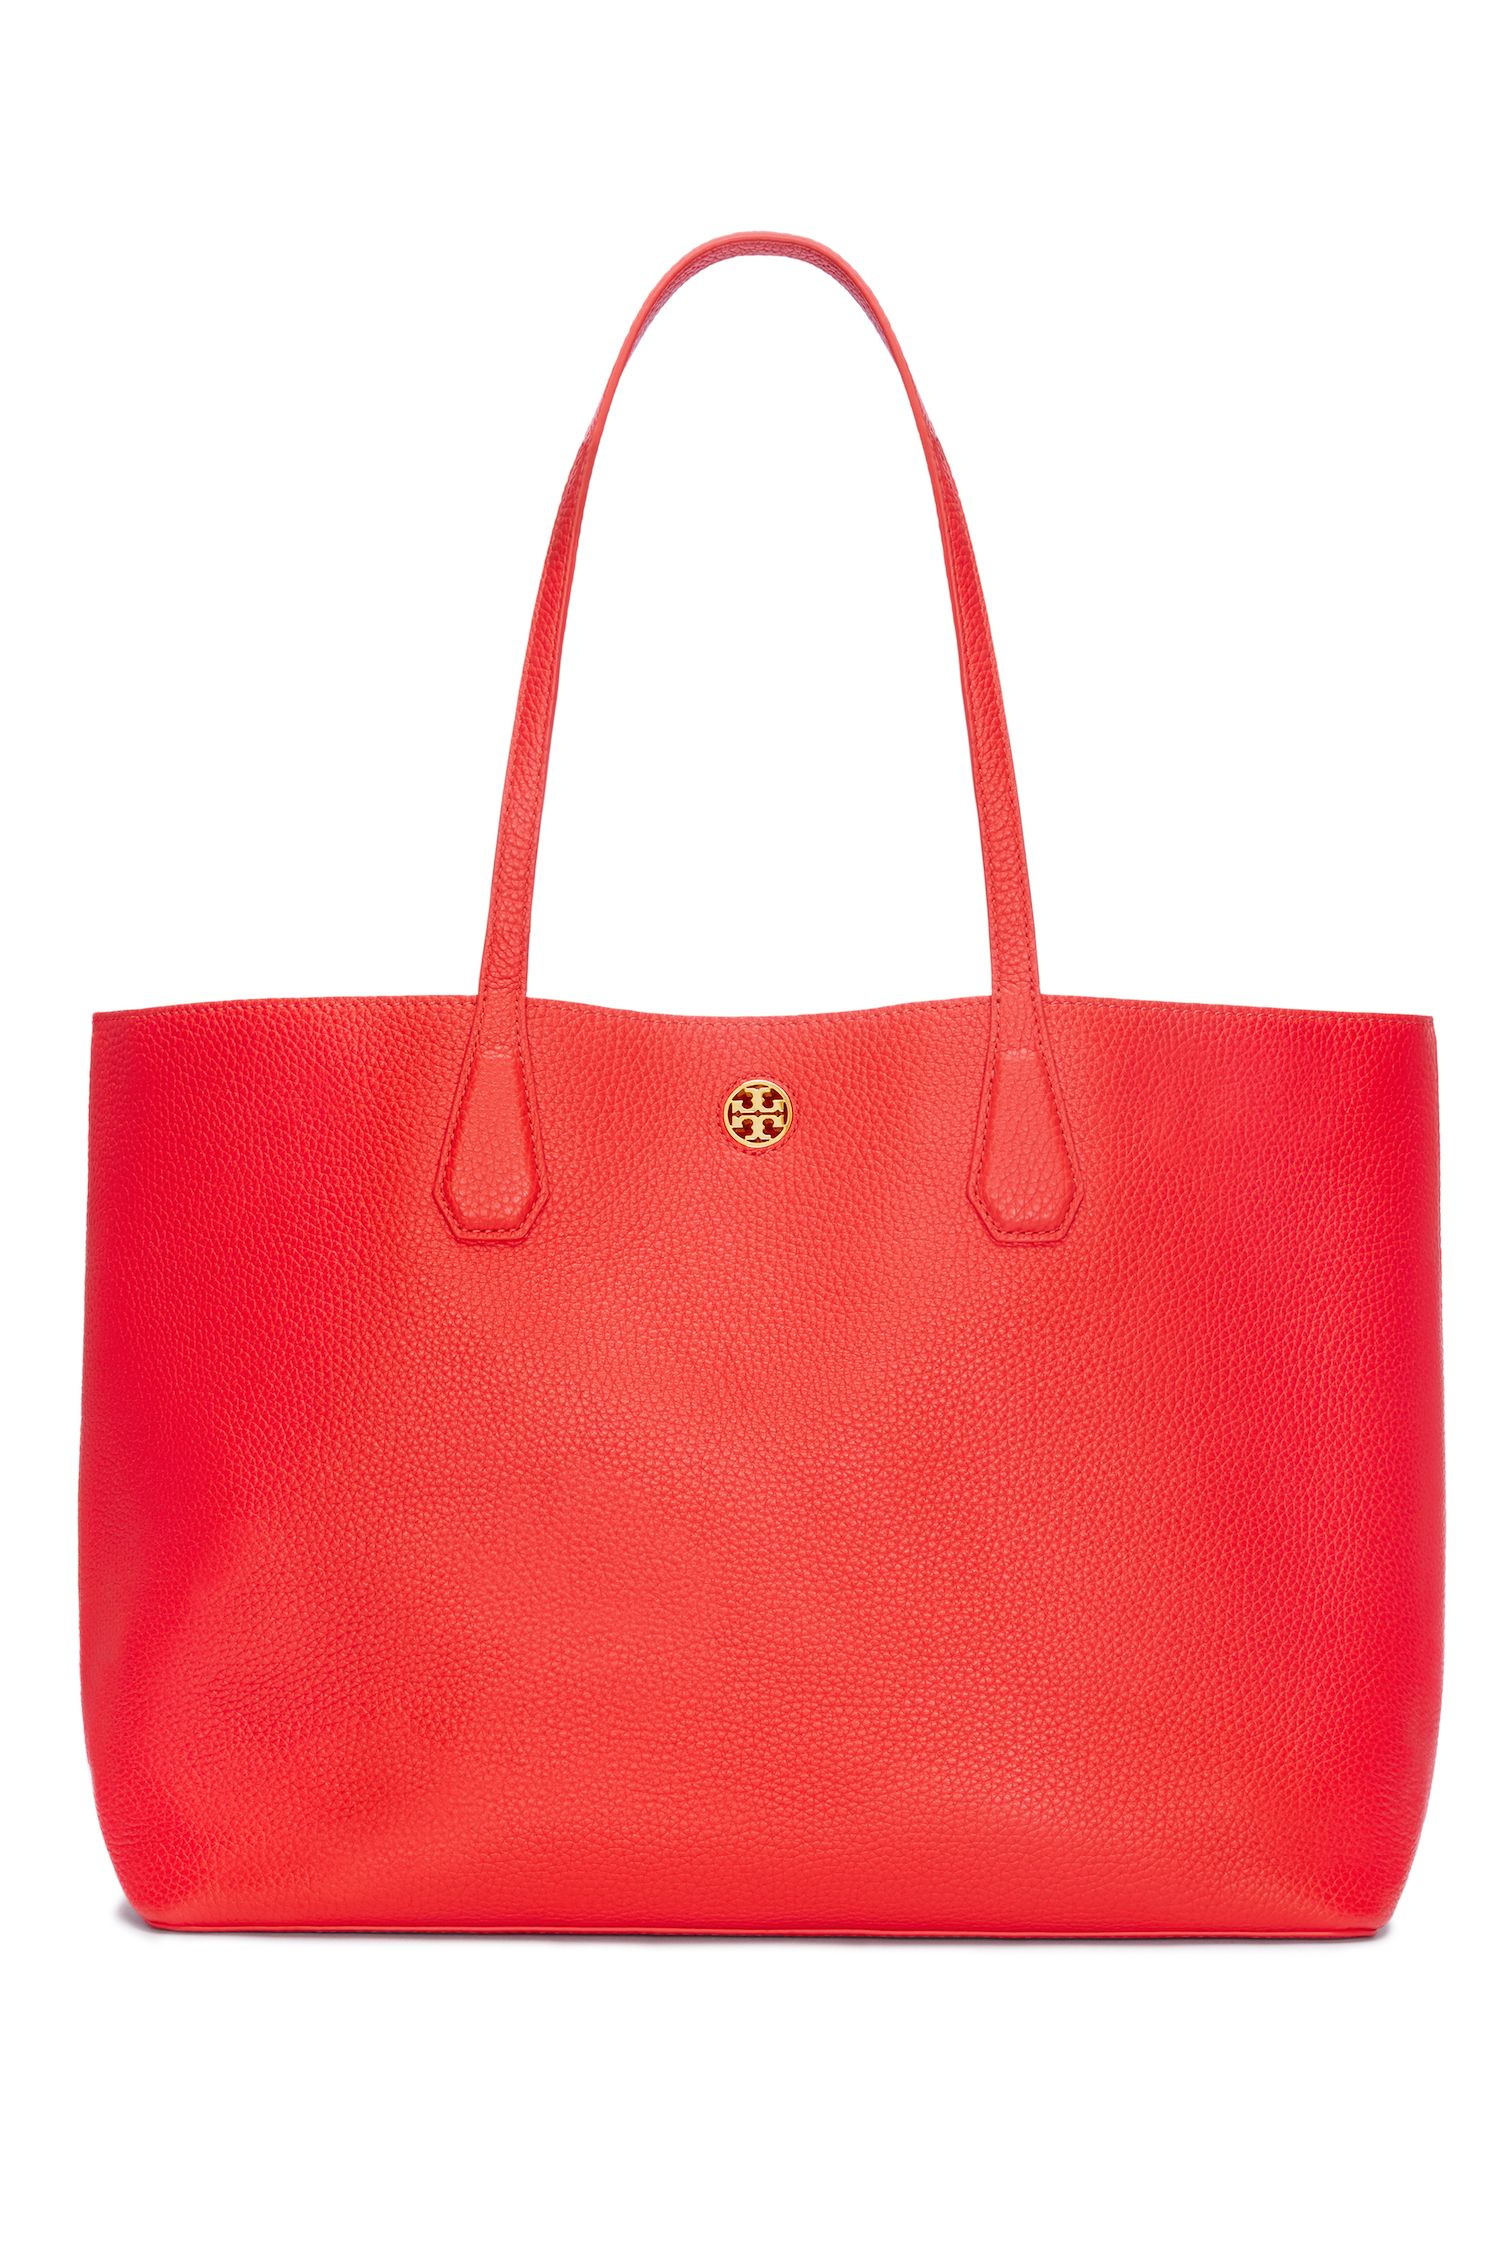 "<p>Every girl needs a go-to carryall—bonus points for a luxe yet totally practical bag that gives off a coveted air of ""I'm effortless, yet chic."" This one will carry her straight from brunch to the boardroom (and anywhere else the day may take her), with a bright, playful color that screams confidence.<br> </p><p><strong>Perry Tote, $395; <a href=""https://www.toryburch.com/perry-tote/11169782.html?cgid=shops-mothers-day&dwvar_11169782_color=607&start=43"" target=""_blank"">toryburch.com</a>.</strong><br></p>"